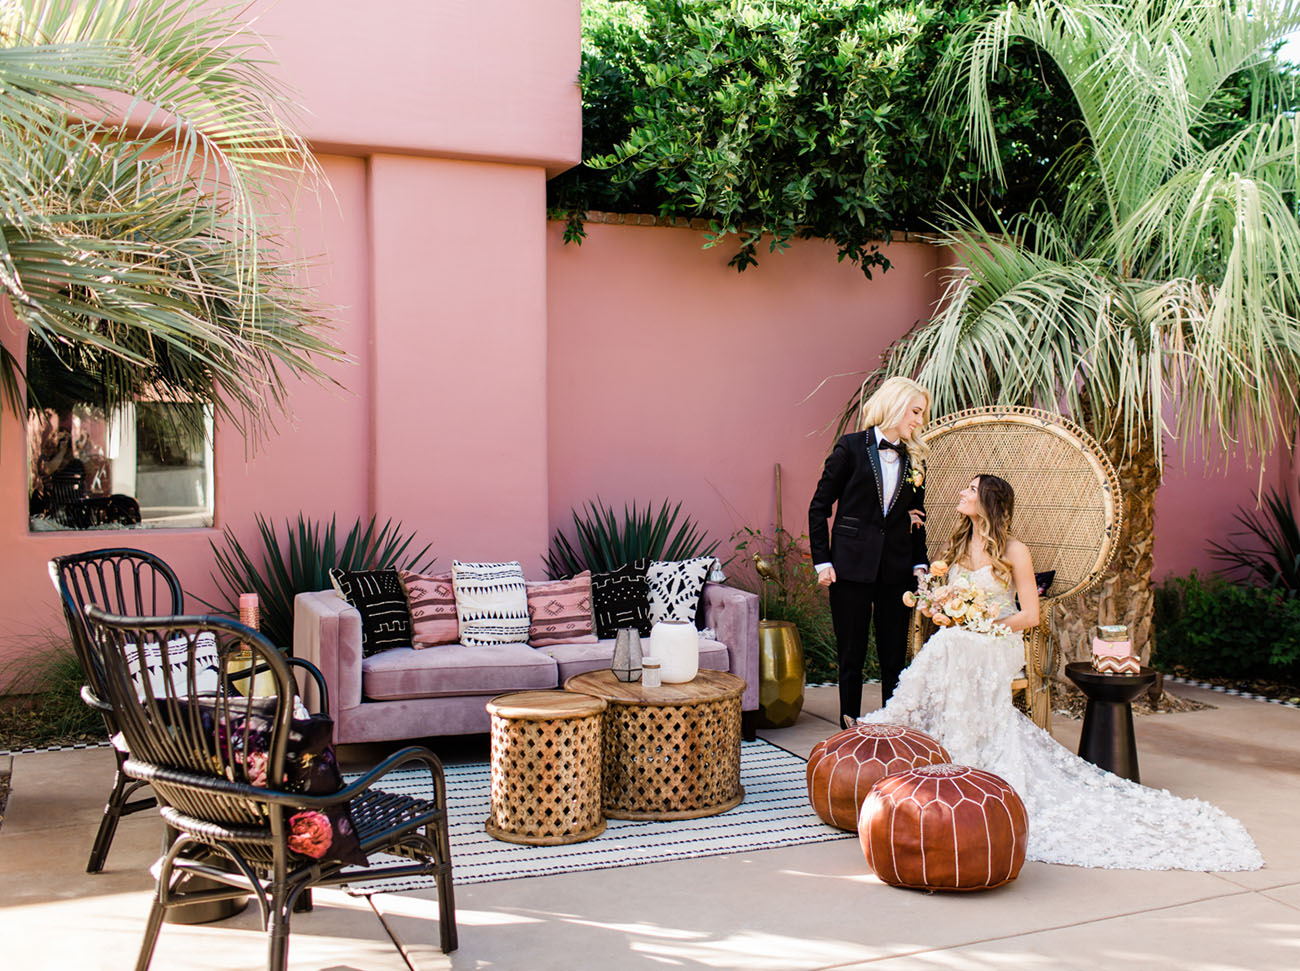 The wedding lounge was truly Moroccan, with leather ottomans, carved tables and a purple sofa